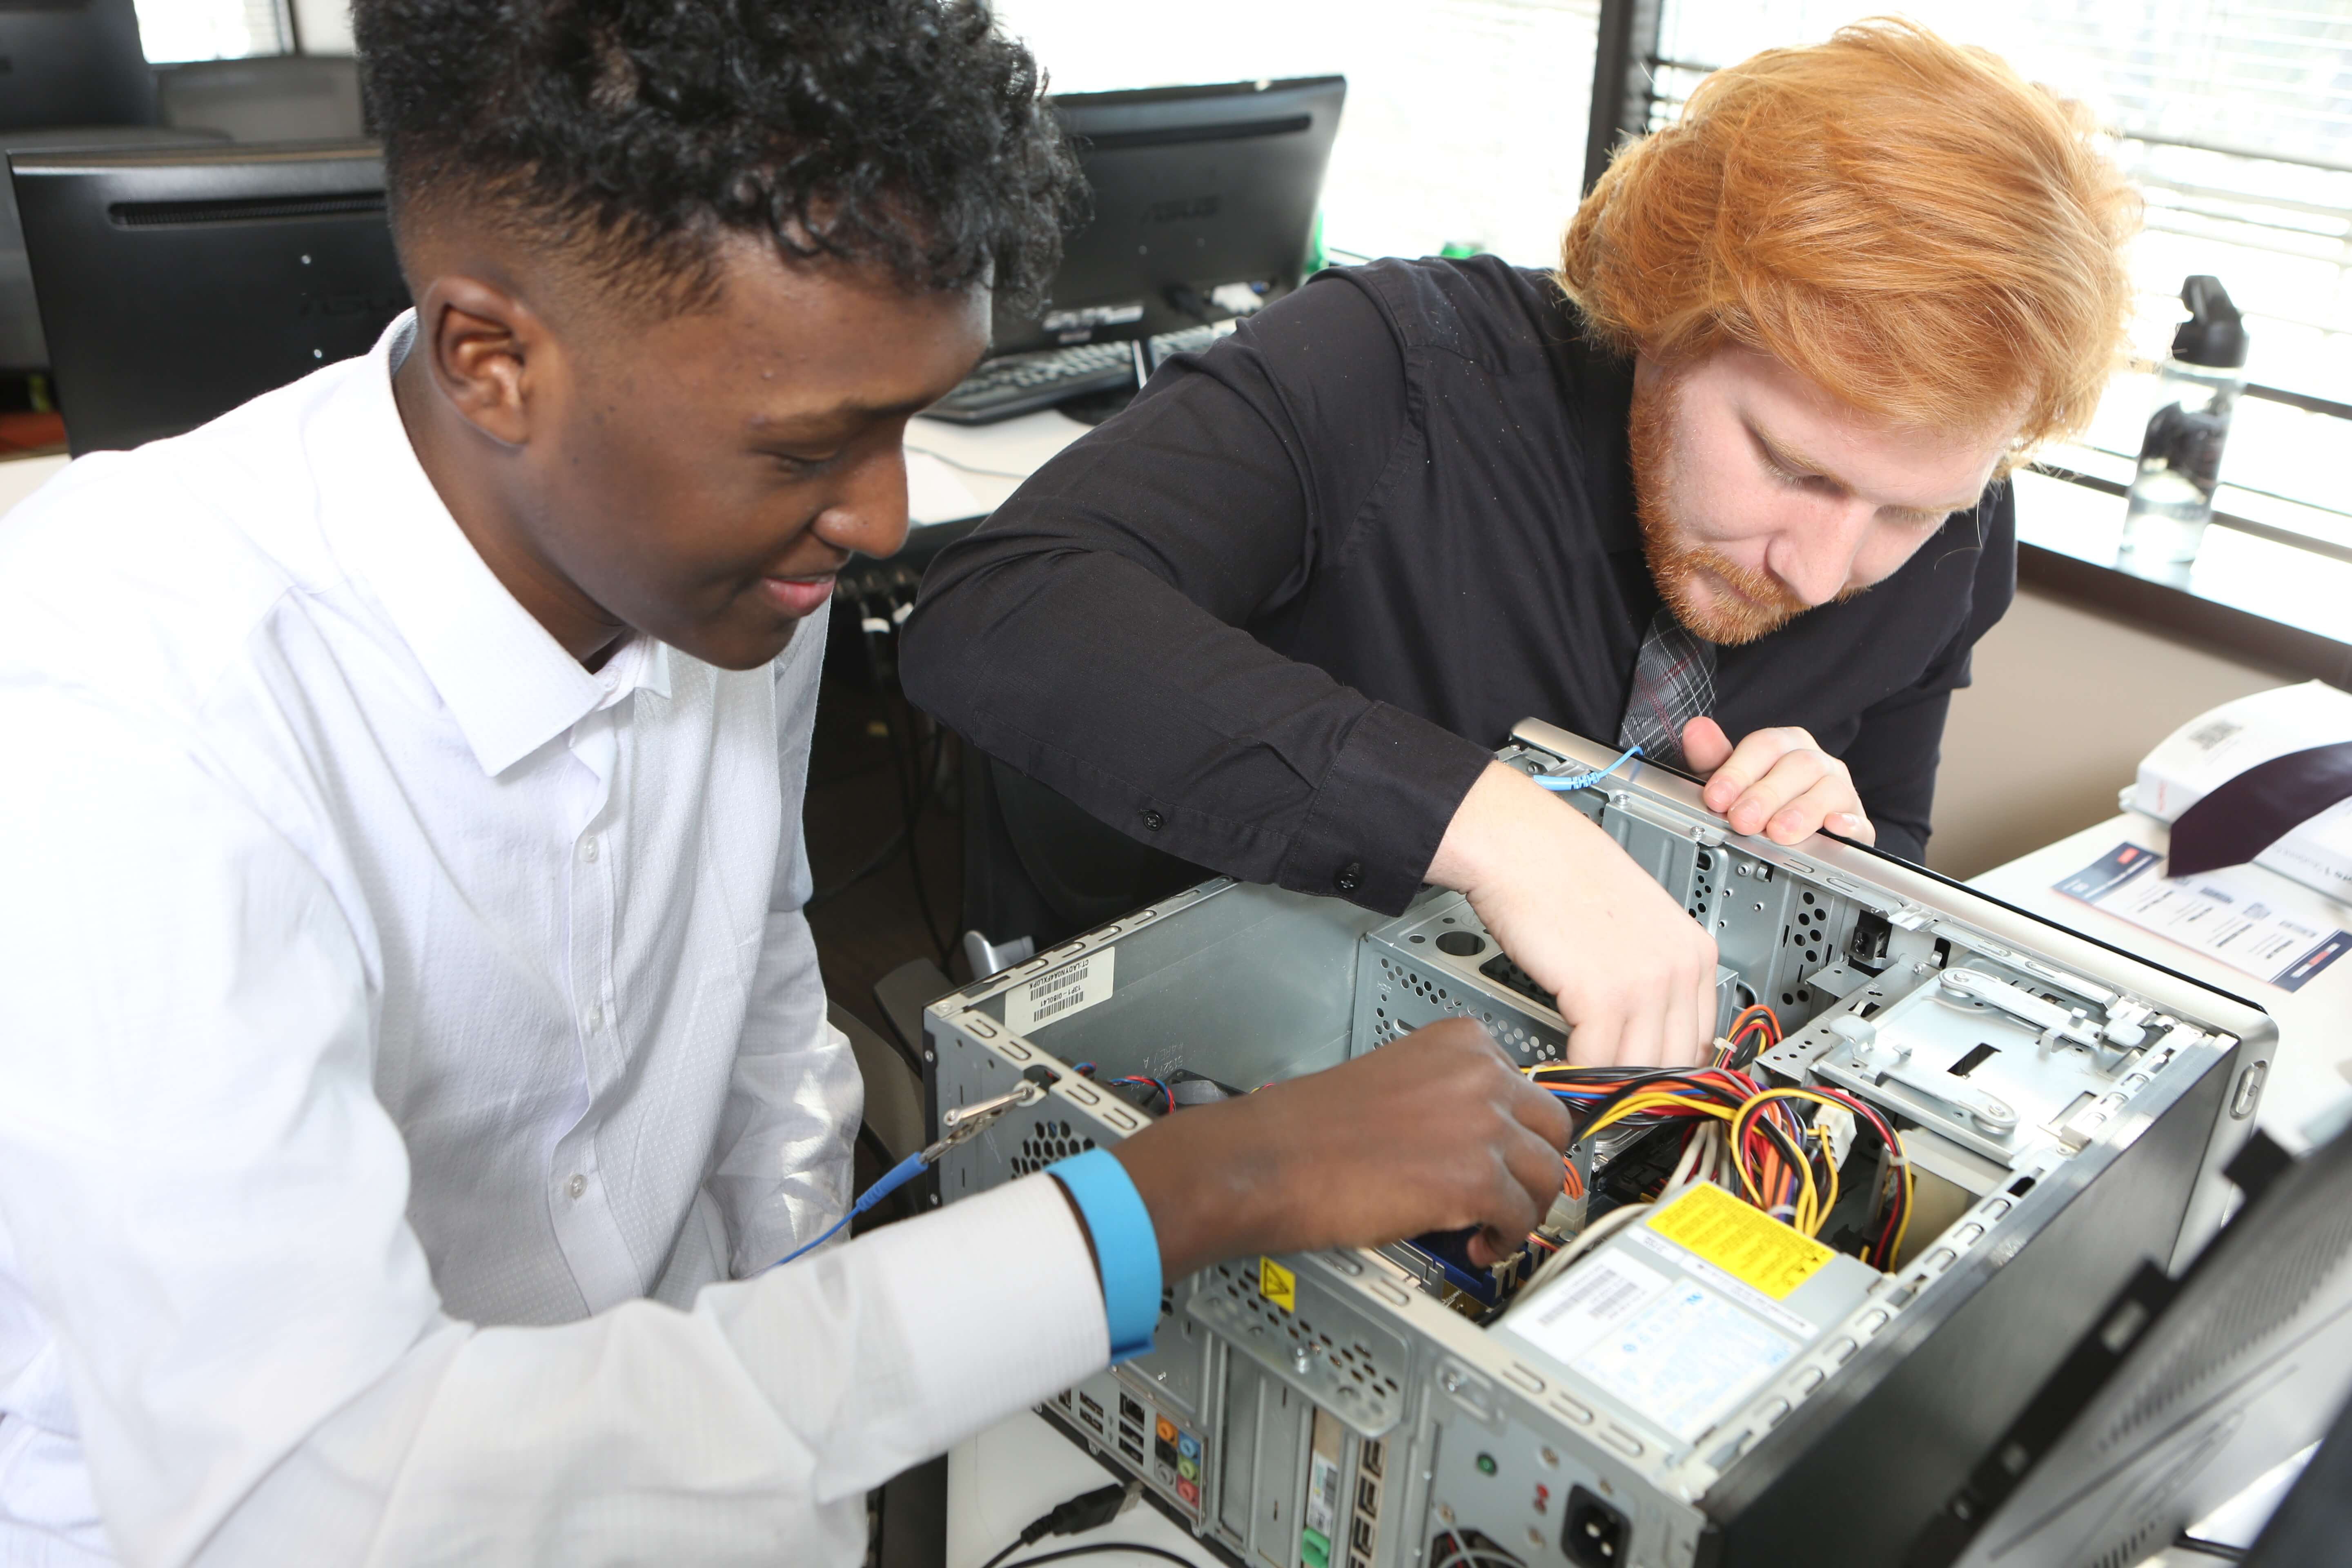 IT-Ready students work on the inside of an open desktop PC